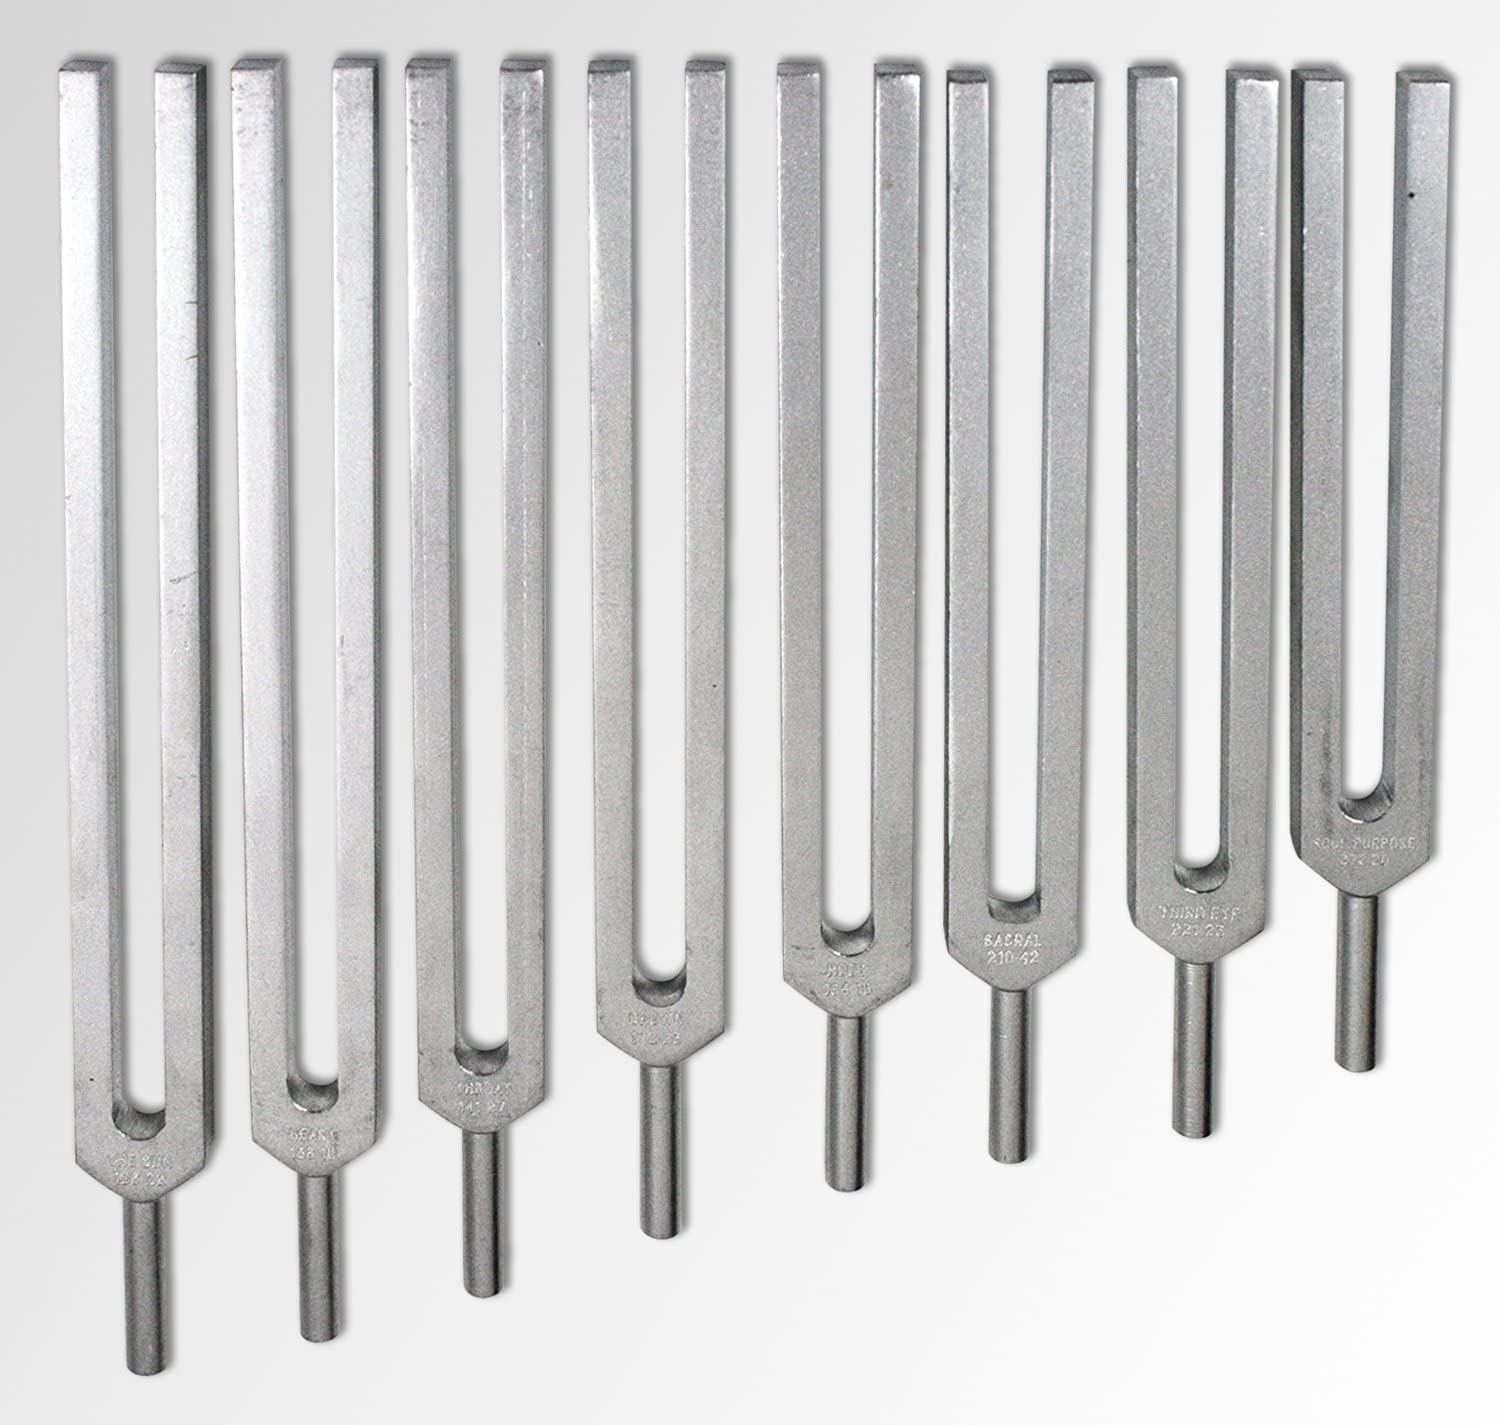 Chakra Tuning Forks of 8 Set San Antonio Ranking integrated 1st place Mall